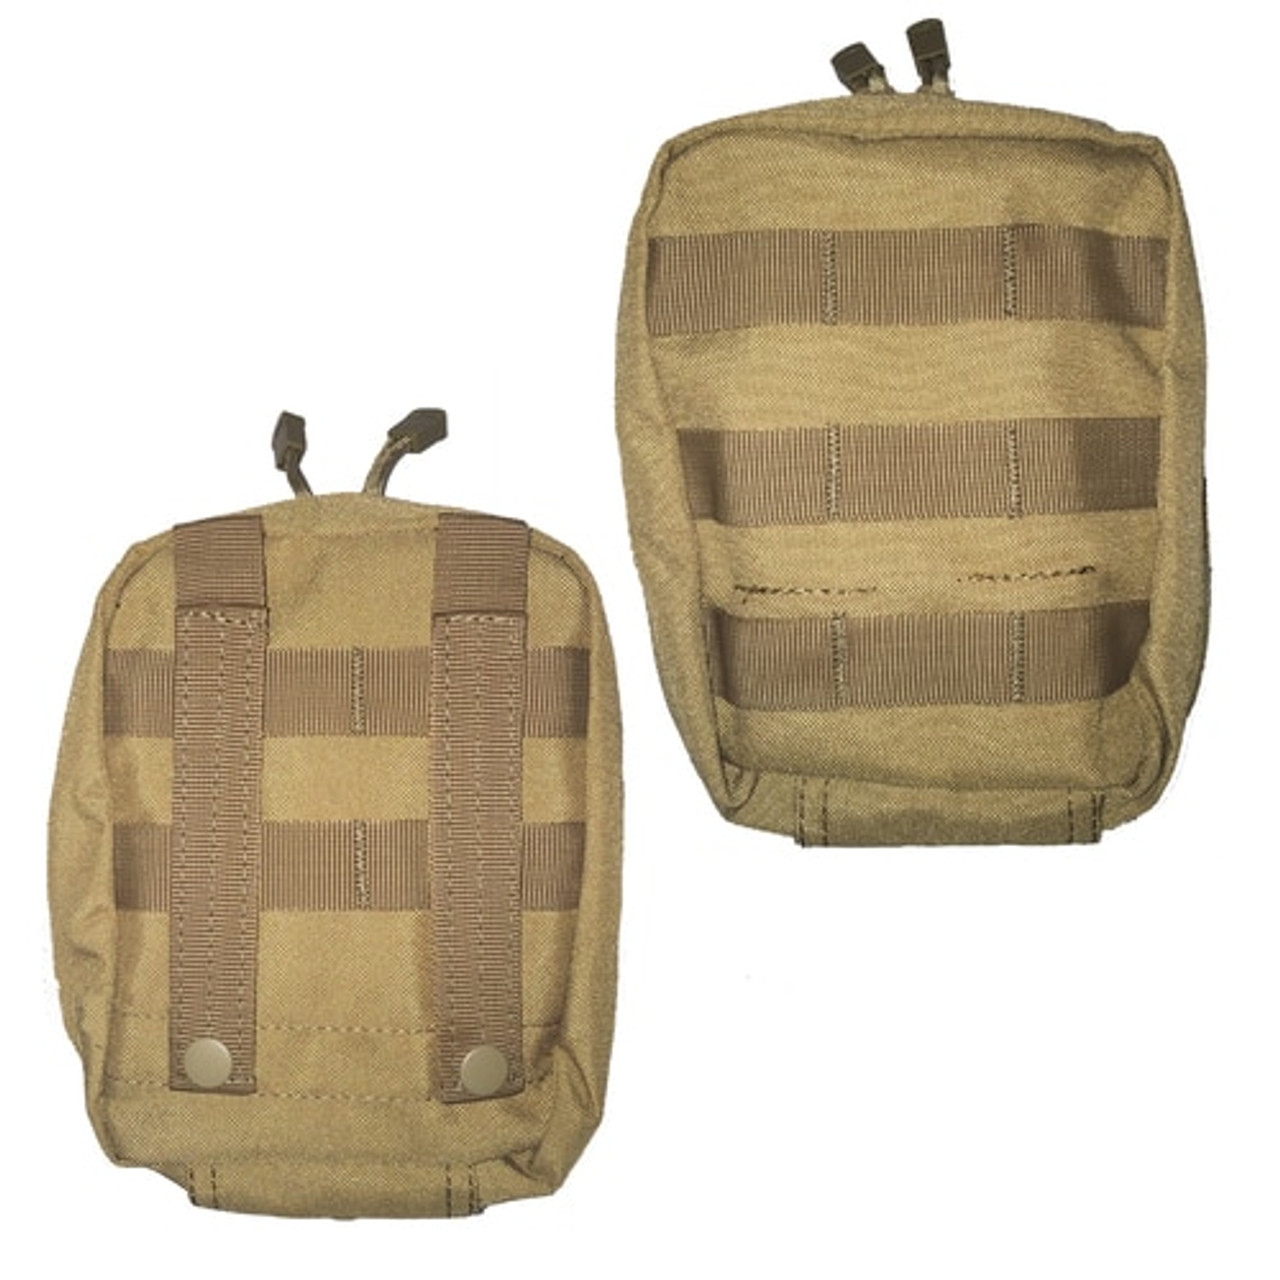 First Aid Pouch, MOLLE Compatible